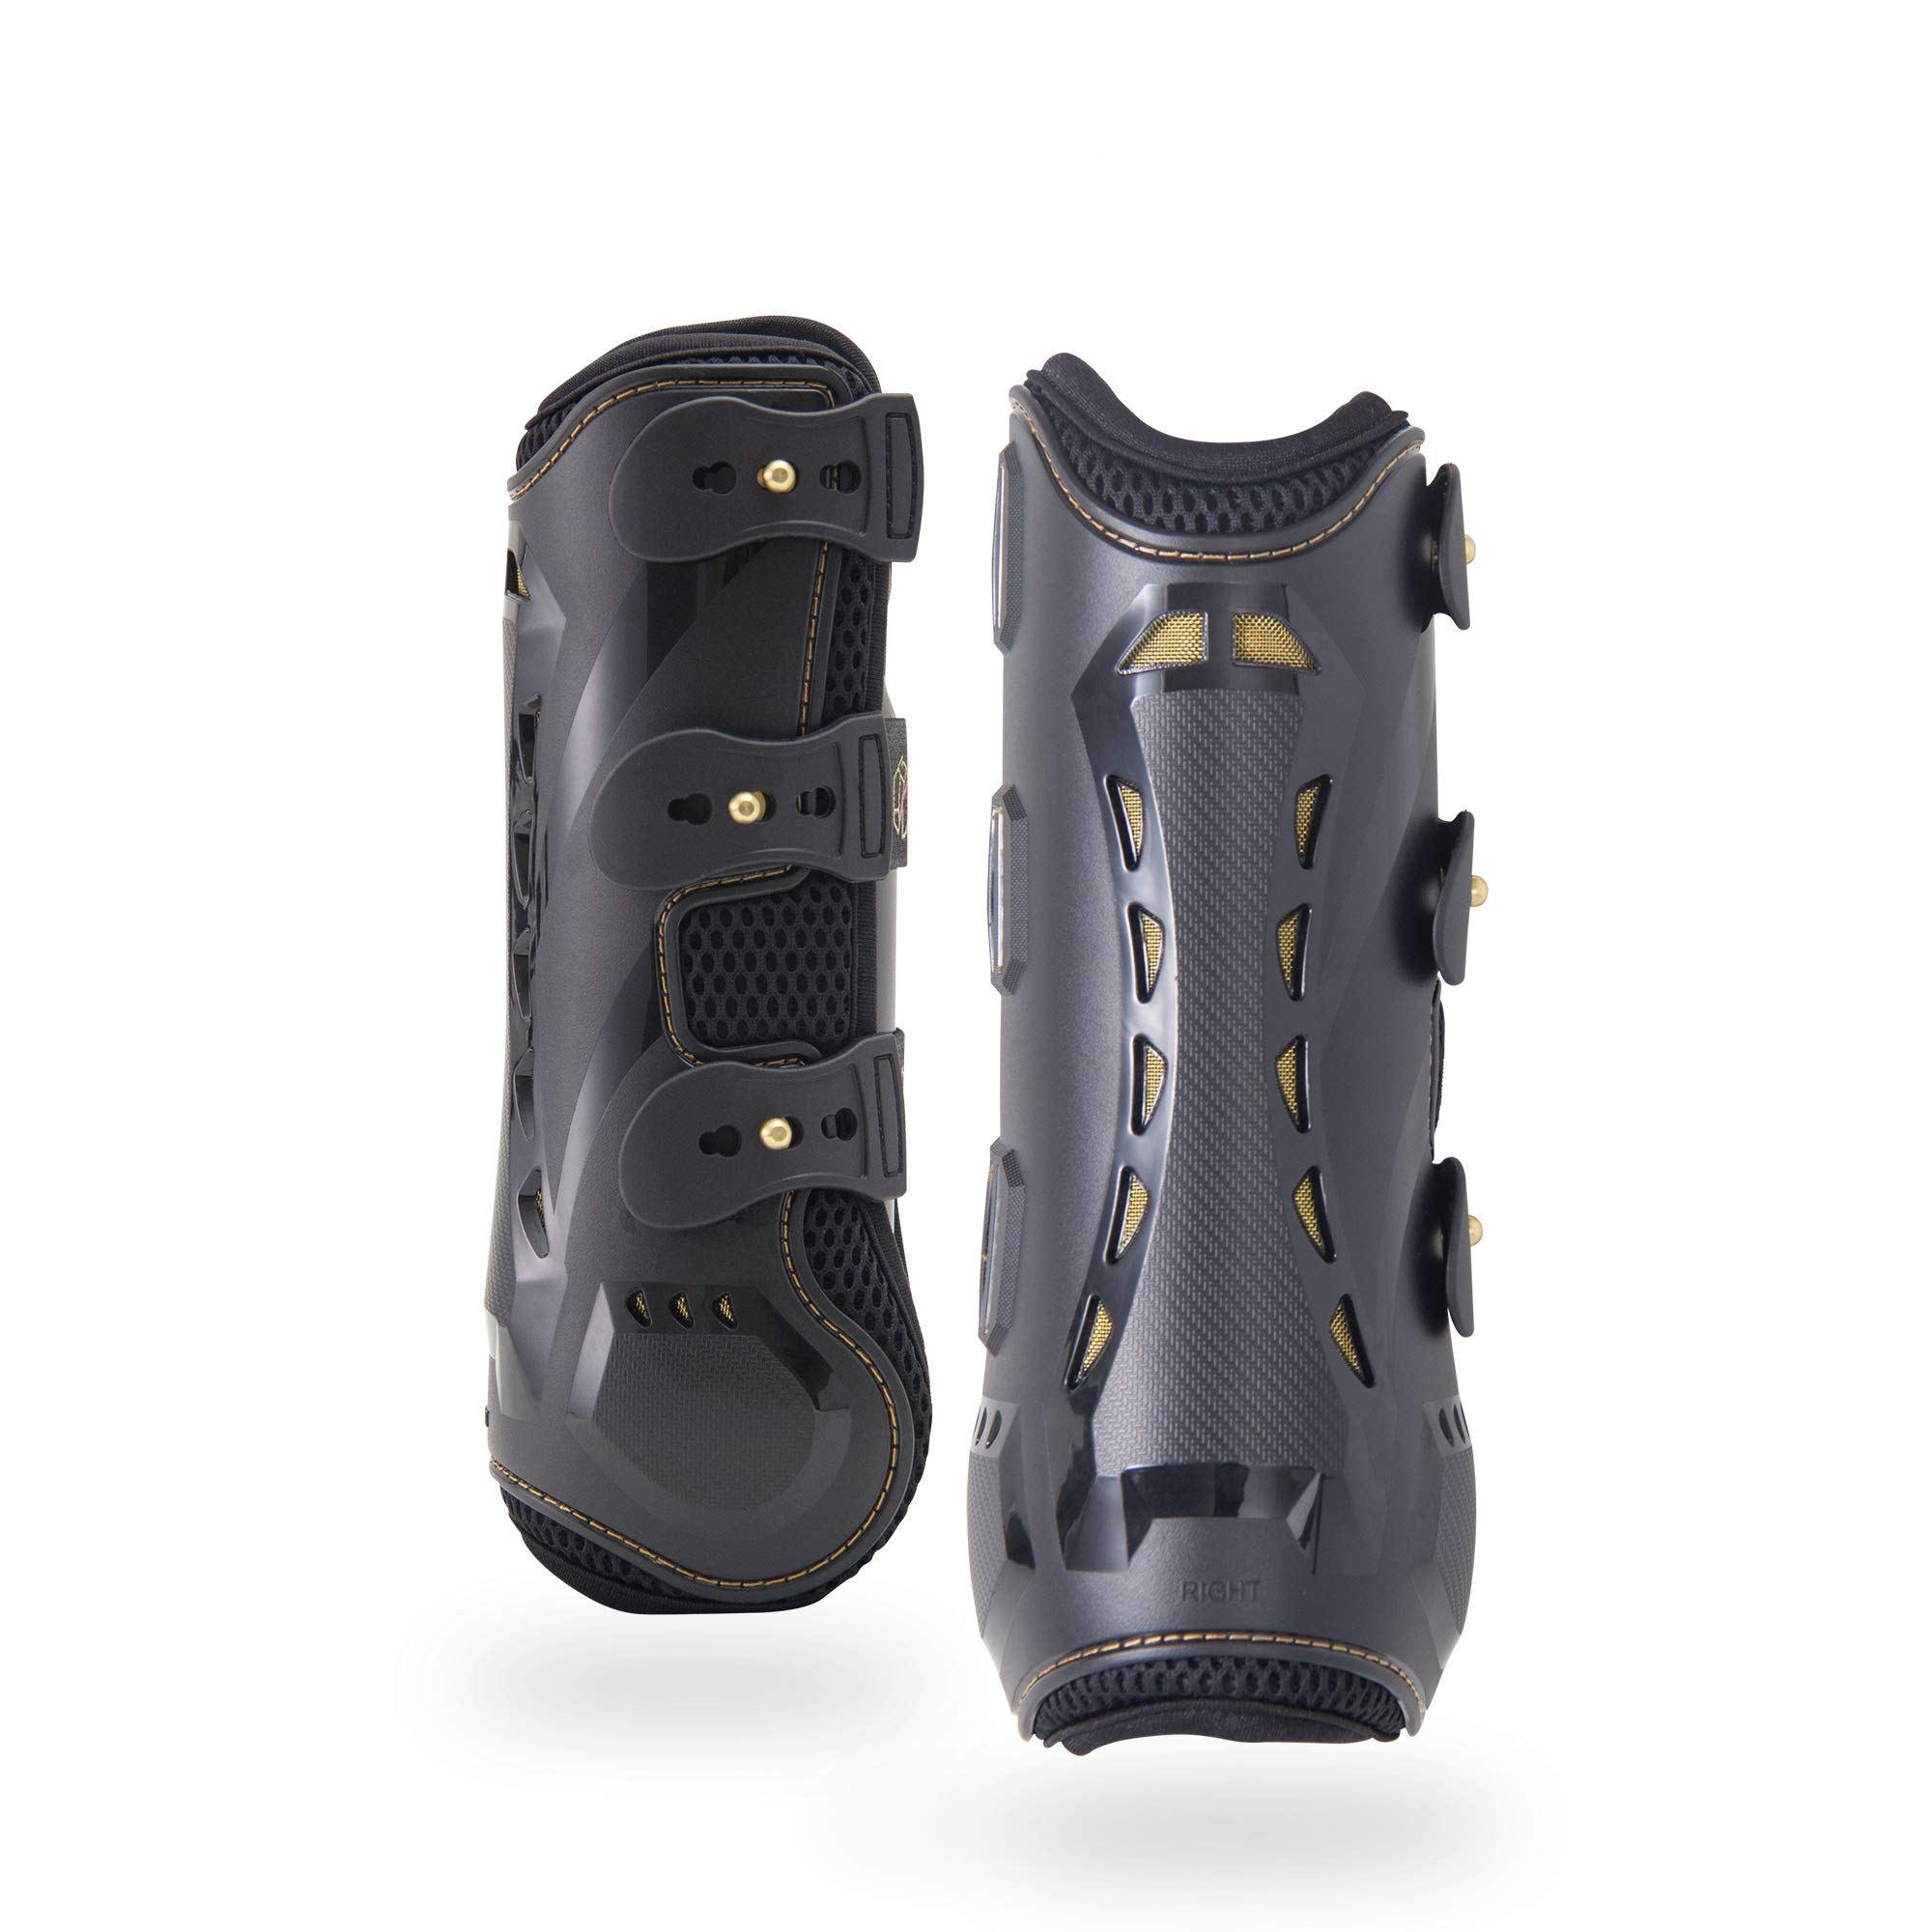 Horse Tendon Boots by Kavallerie: Pro-K 3D Air-Mesh Horse Boots, Showjumping, Horse Jumping Boots, Lightweight with Breathable Soft Padding for Less Sweat and Rubs [Black]